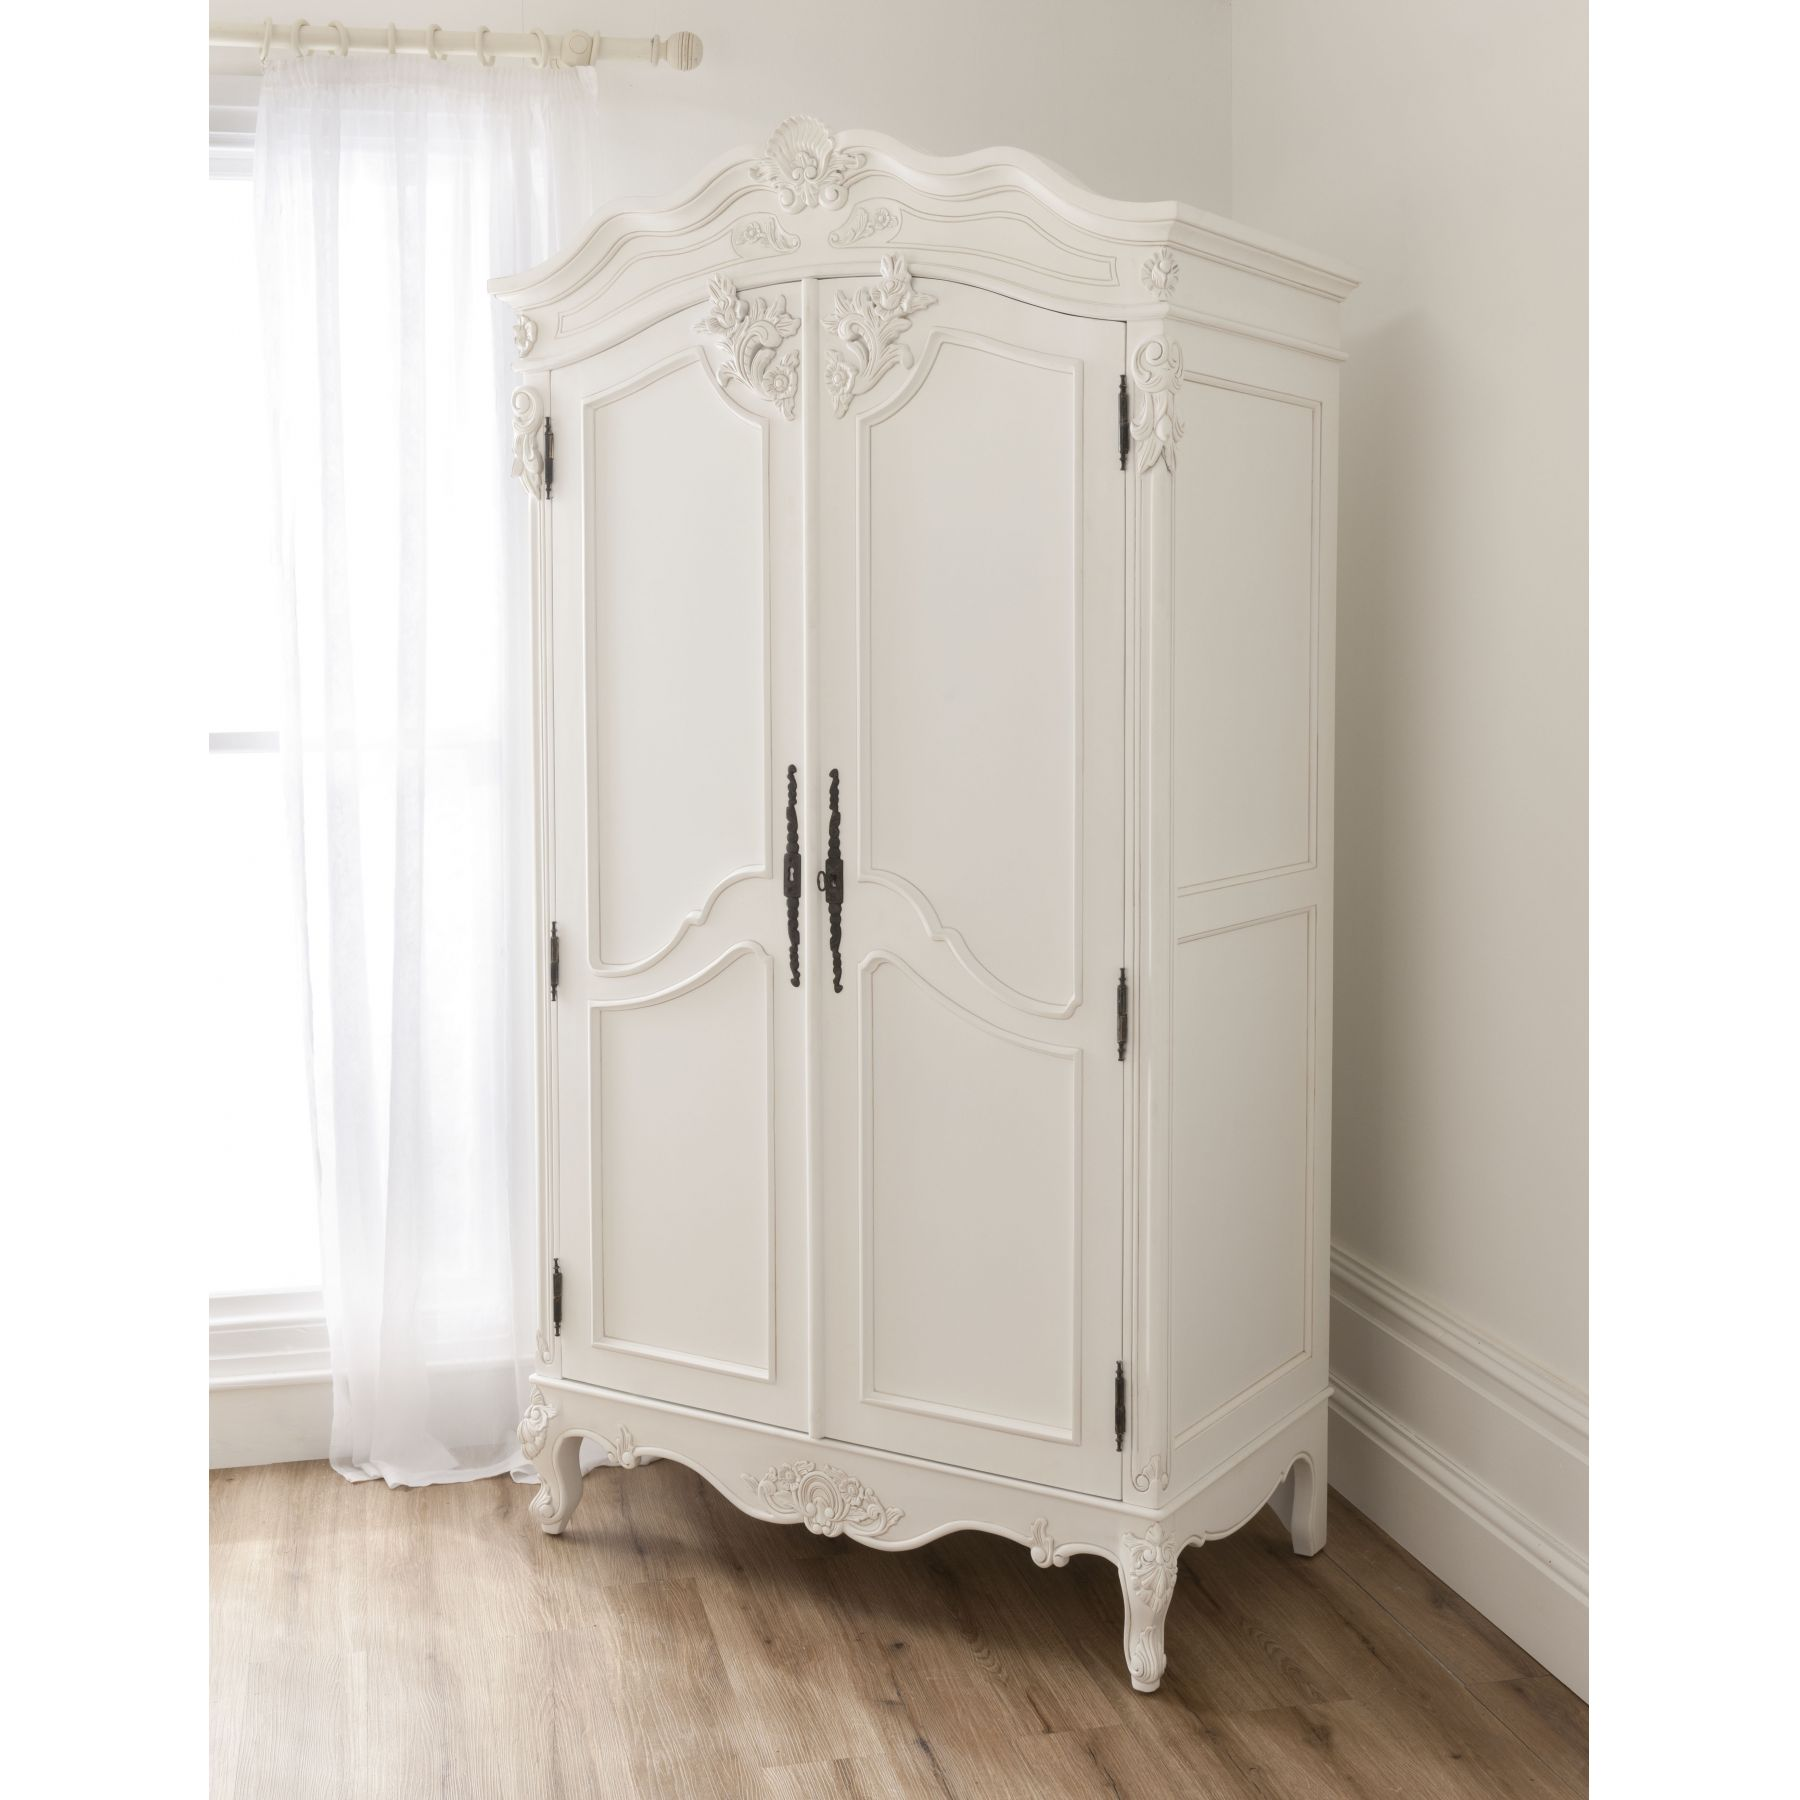 white wardrobes get bold - select a white wardrobe for your room NGYIXWK